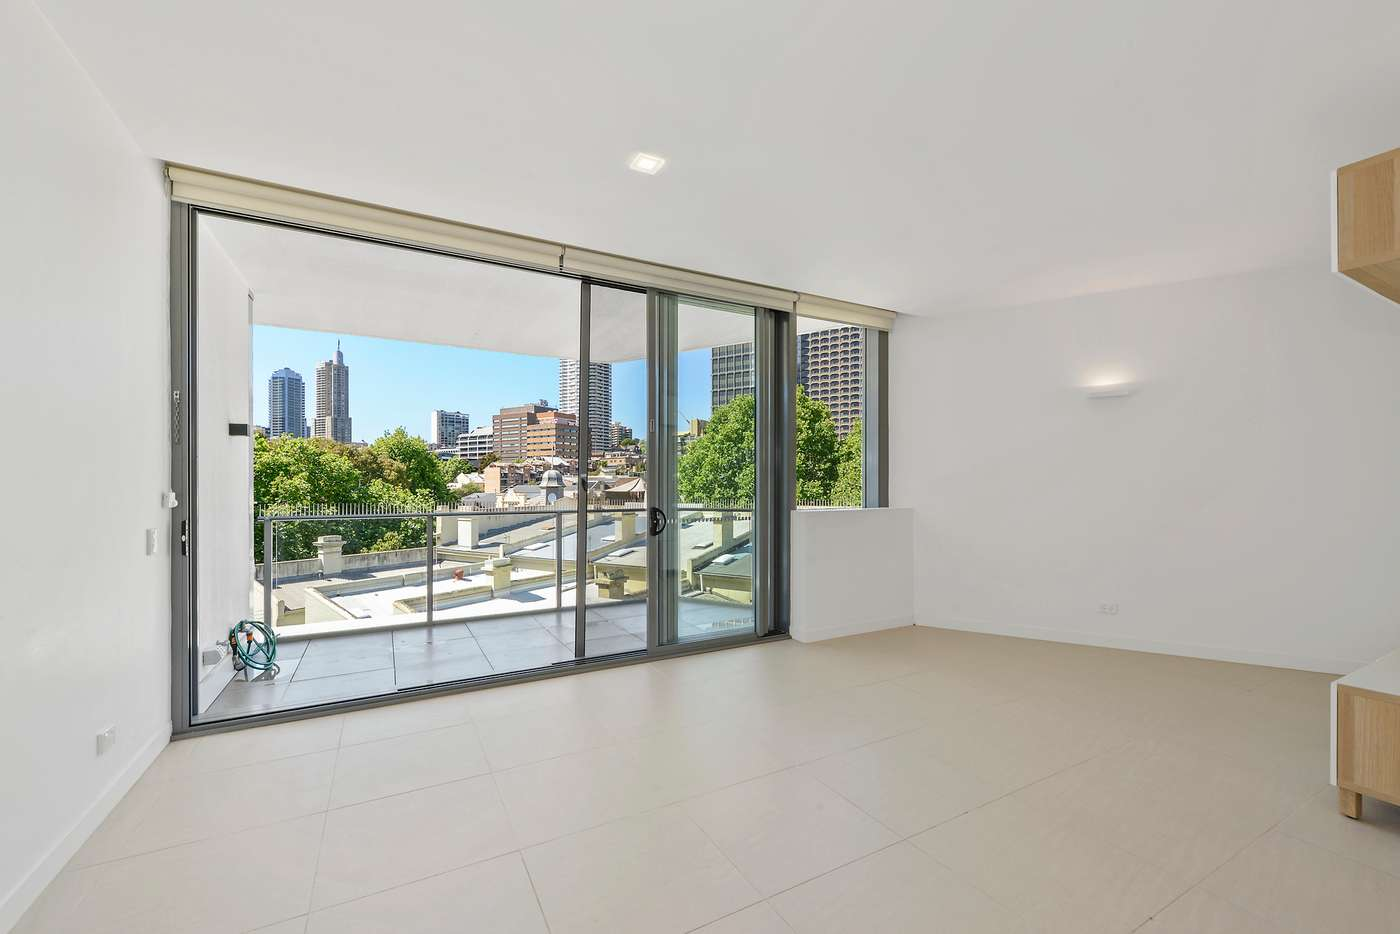 Main view of Homely apartment listing, 74/68 Sir John Young Crescent, Woolloomooloo NSW 2011